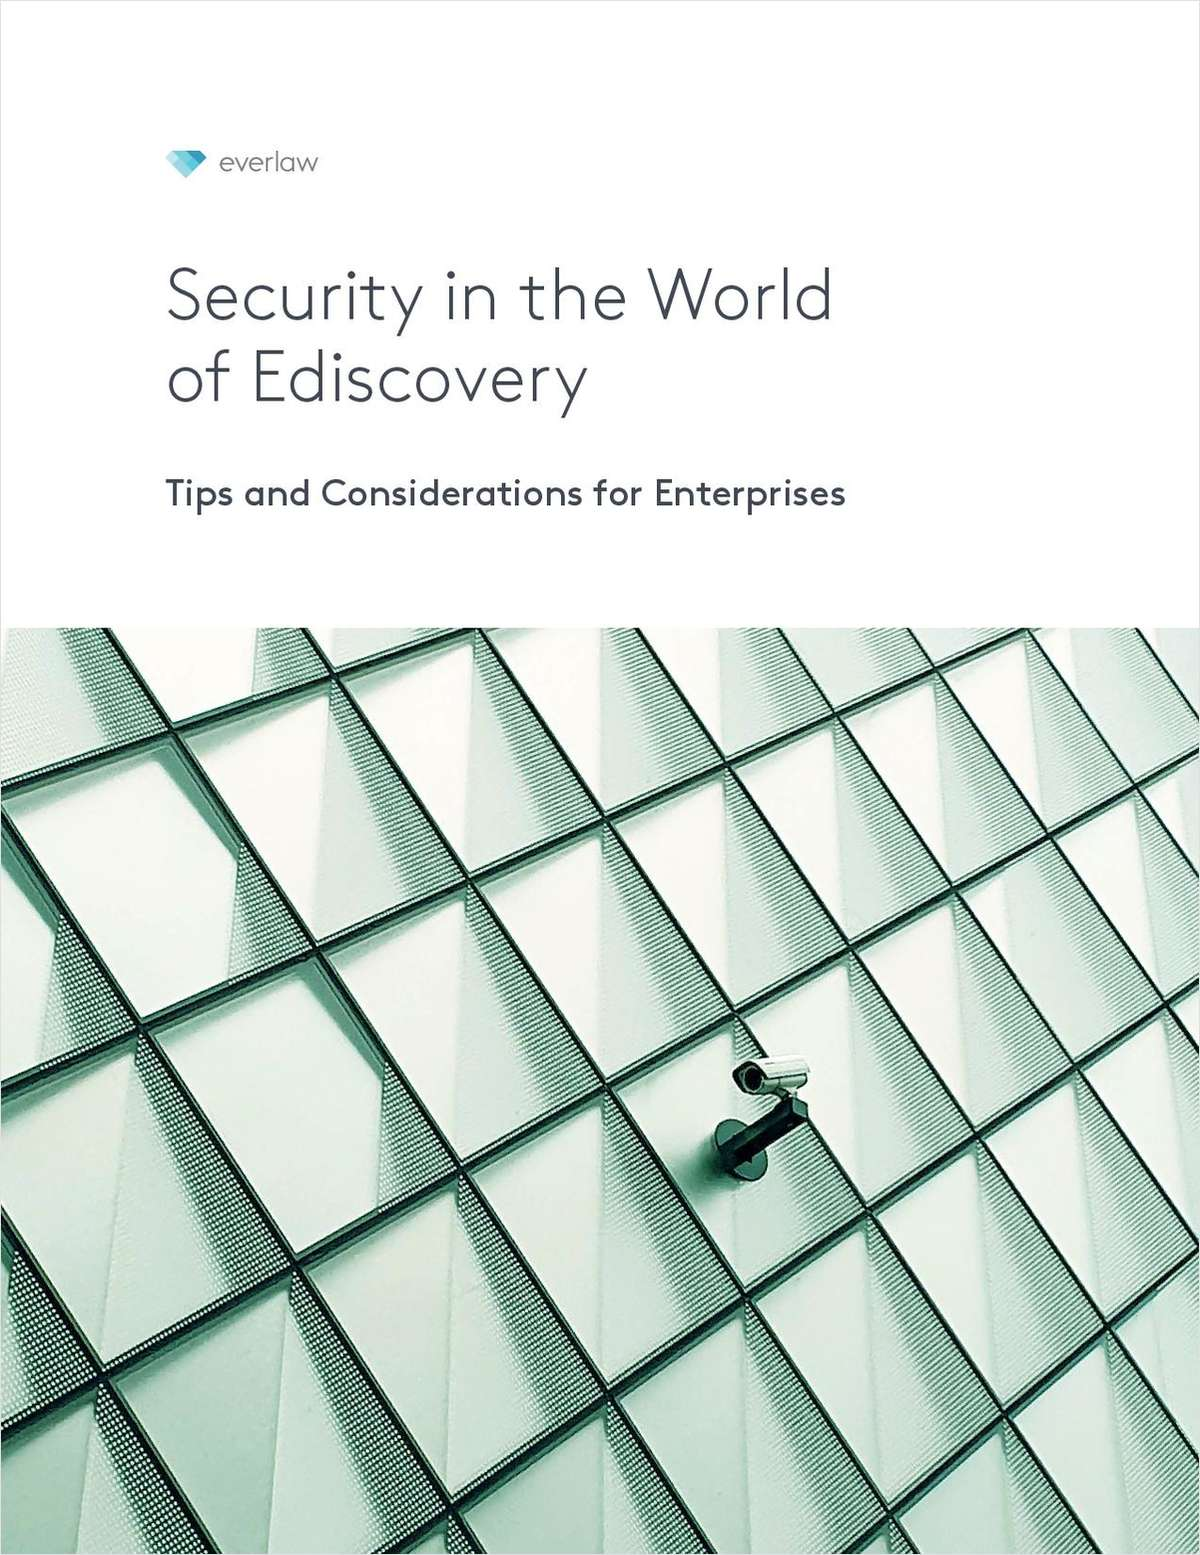 Security in the World of Ediscovery: Tips and Considerations for Enterprises